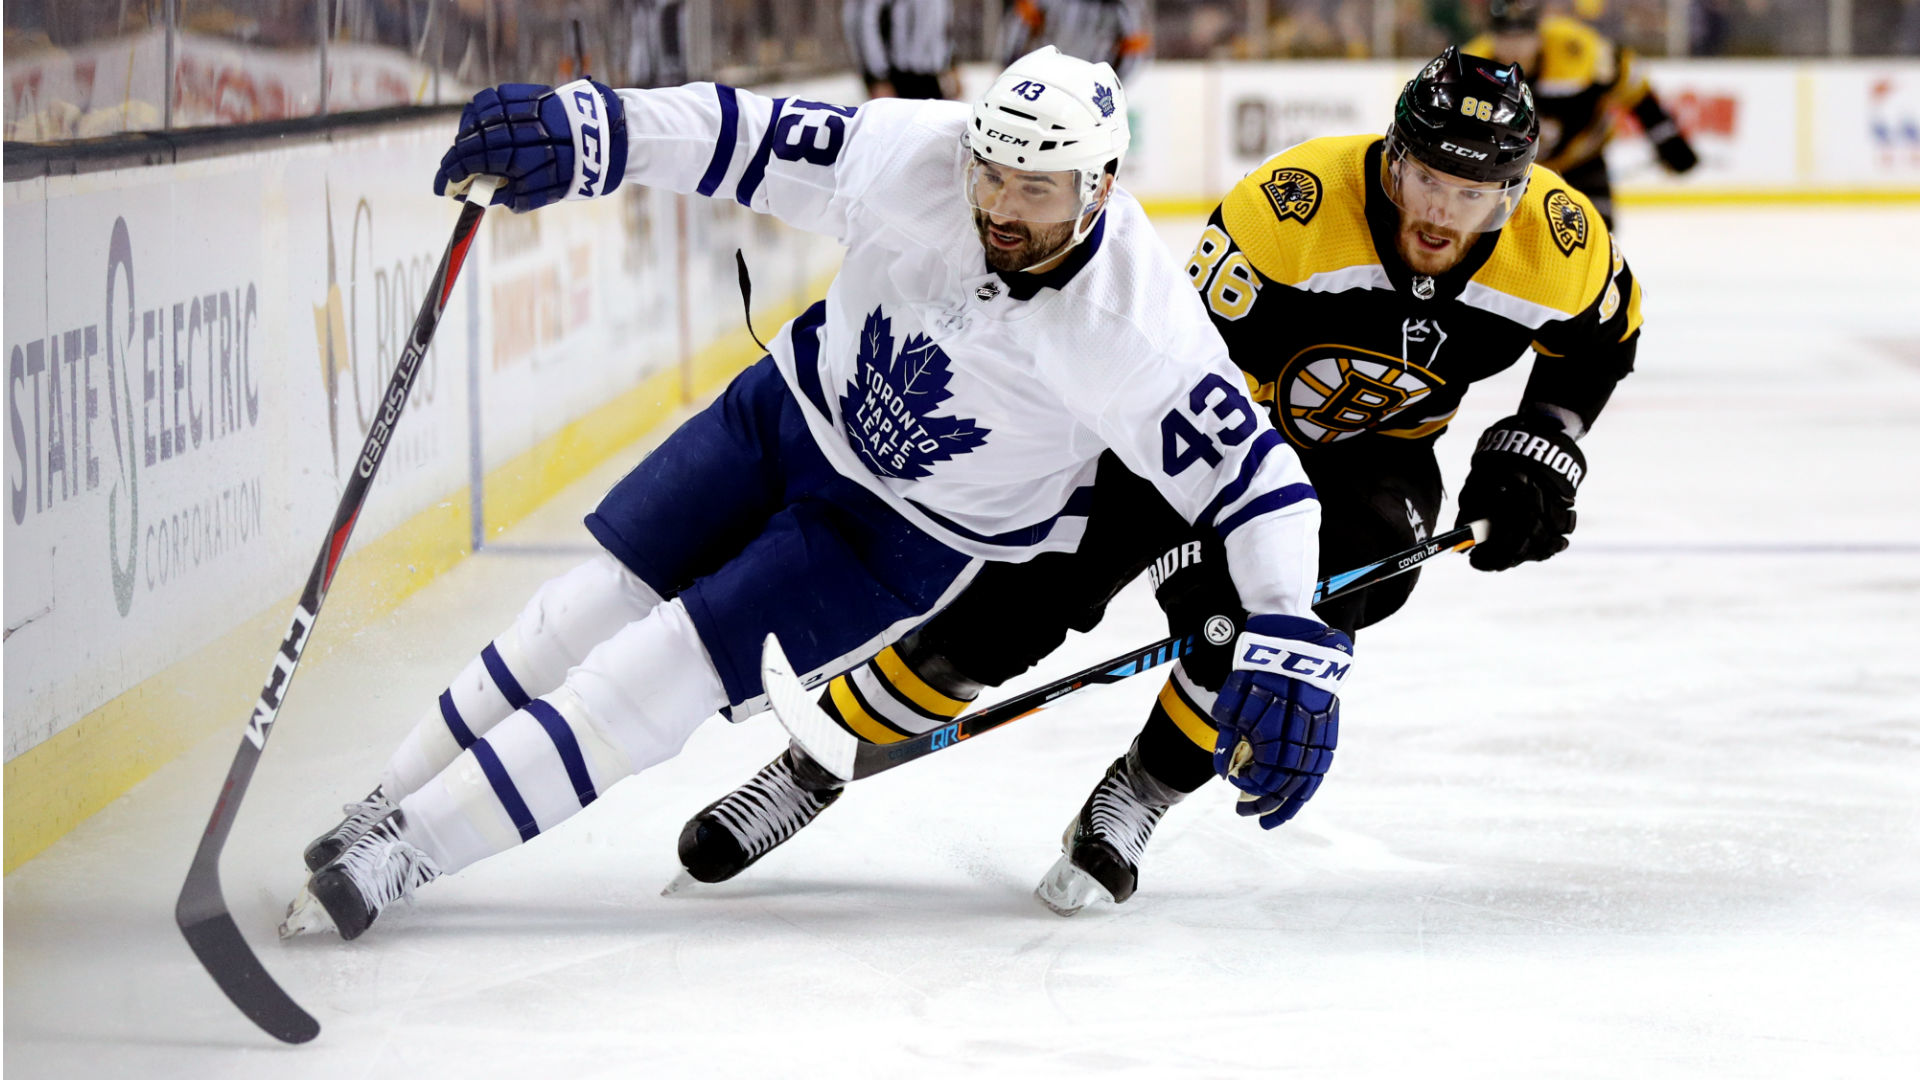 Lightning to face Boston Bruins in 2nd round